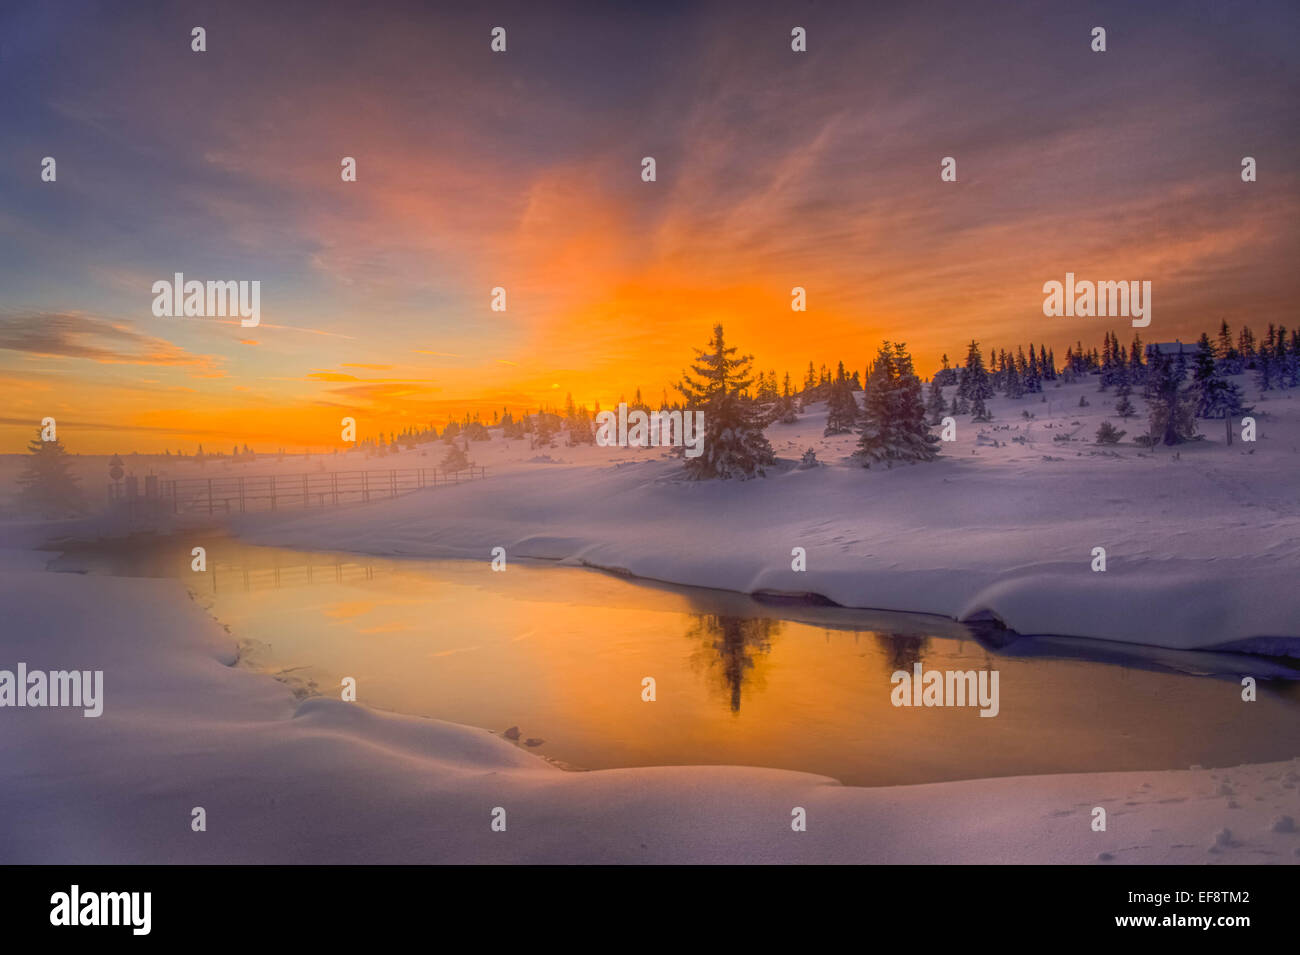 Norway, Namsos, Winter landscape with fog at sunrise - Stock Image